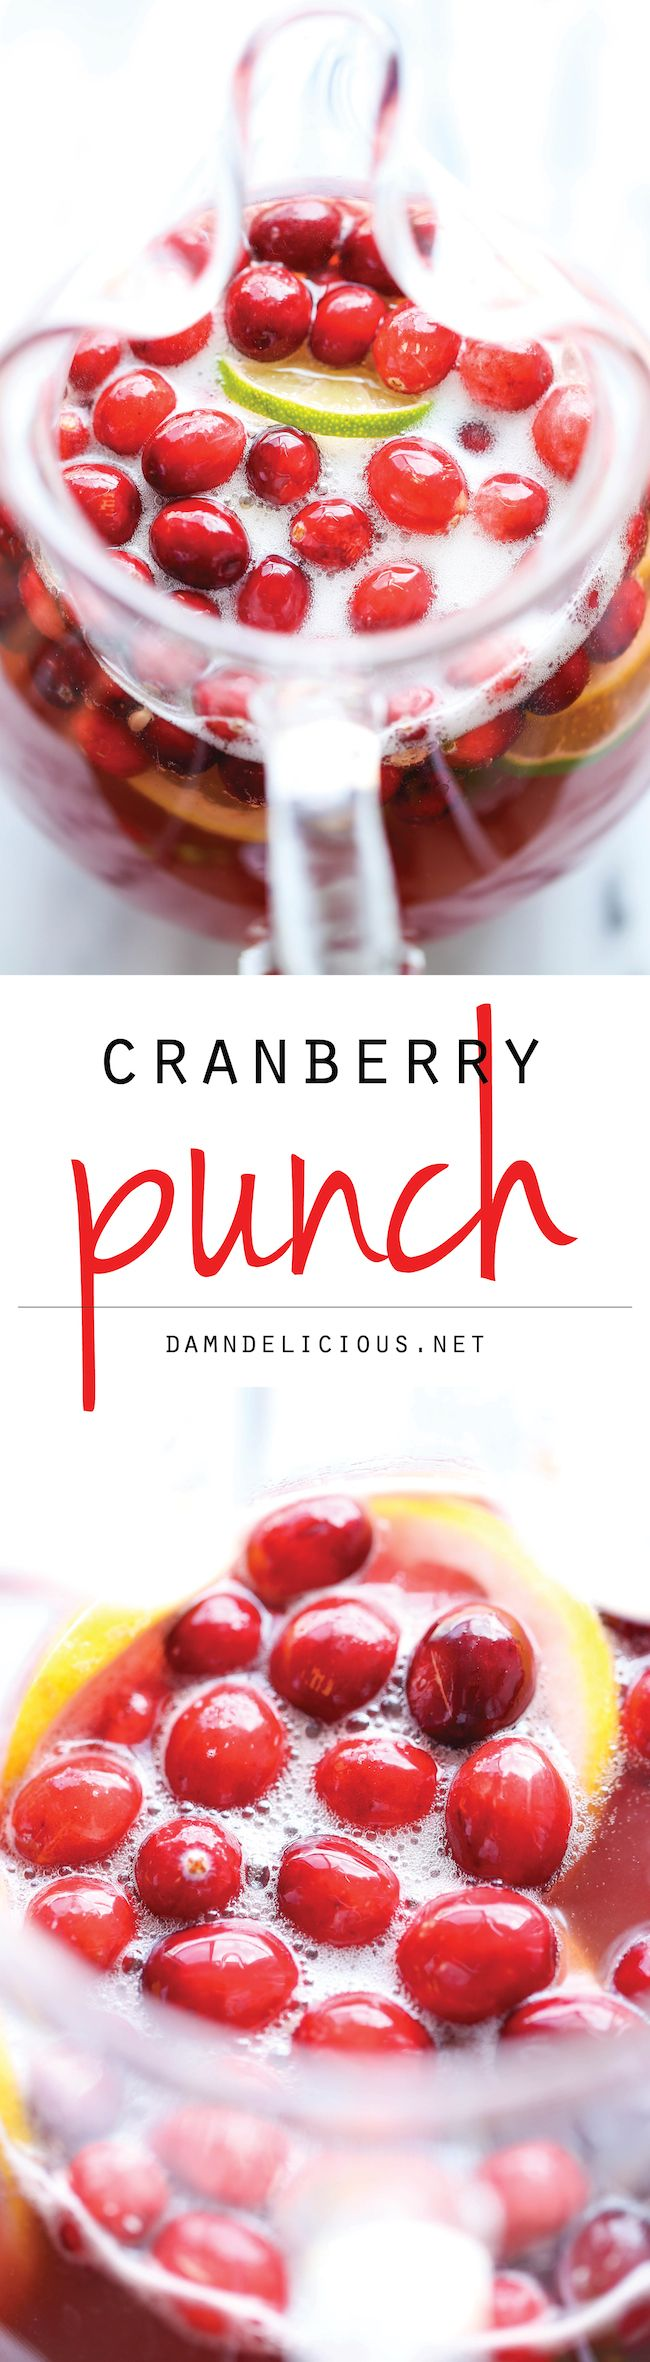 Cranberry Punch - A super easy, refreshing drink so perfect for the holidays! And you can even make this an alcoholic drink for the grown-ups!